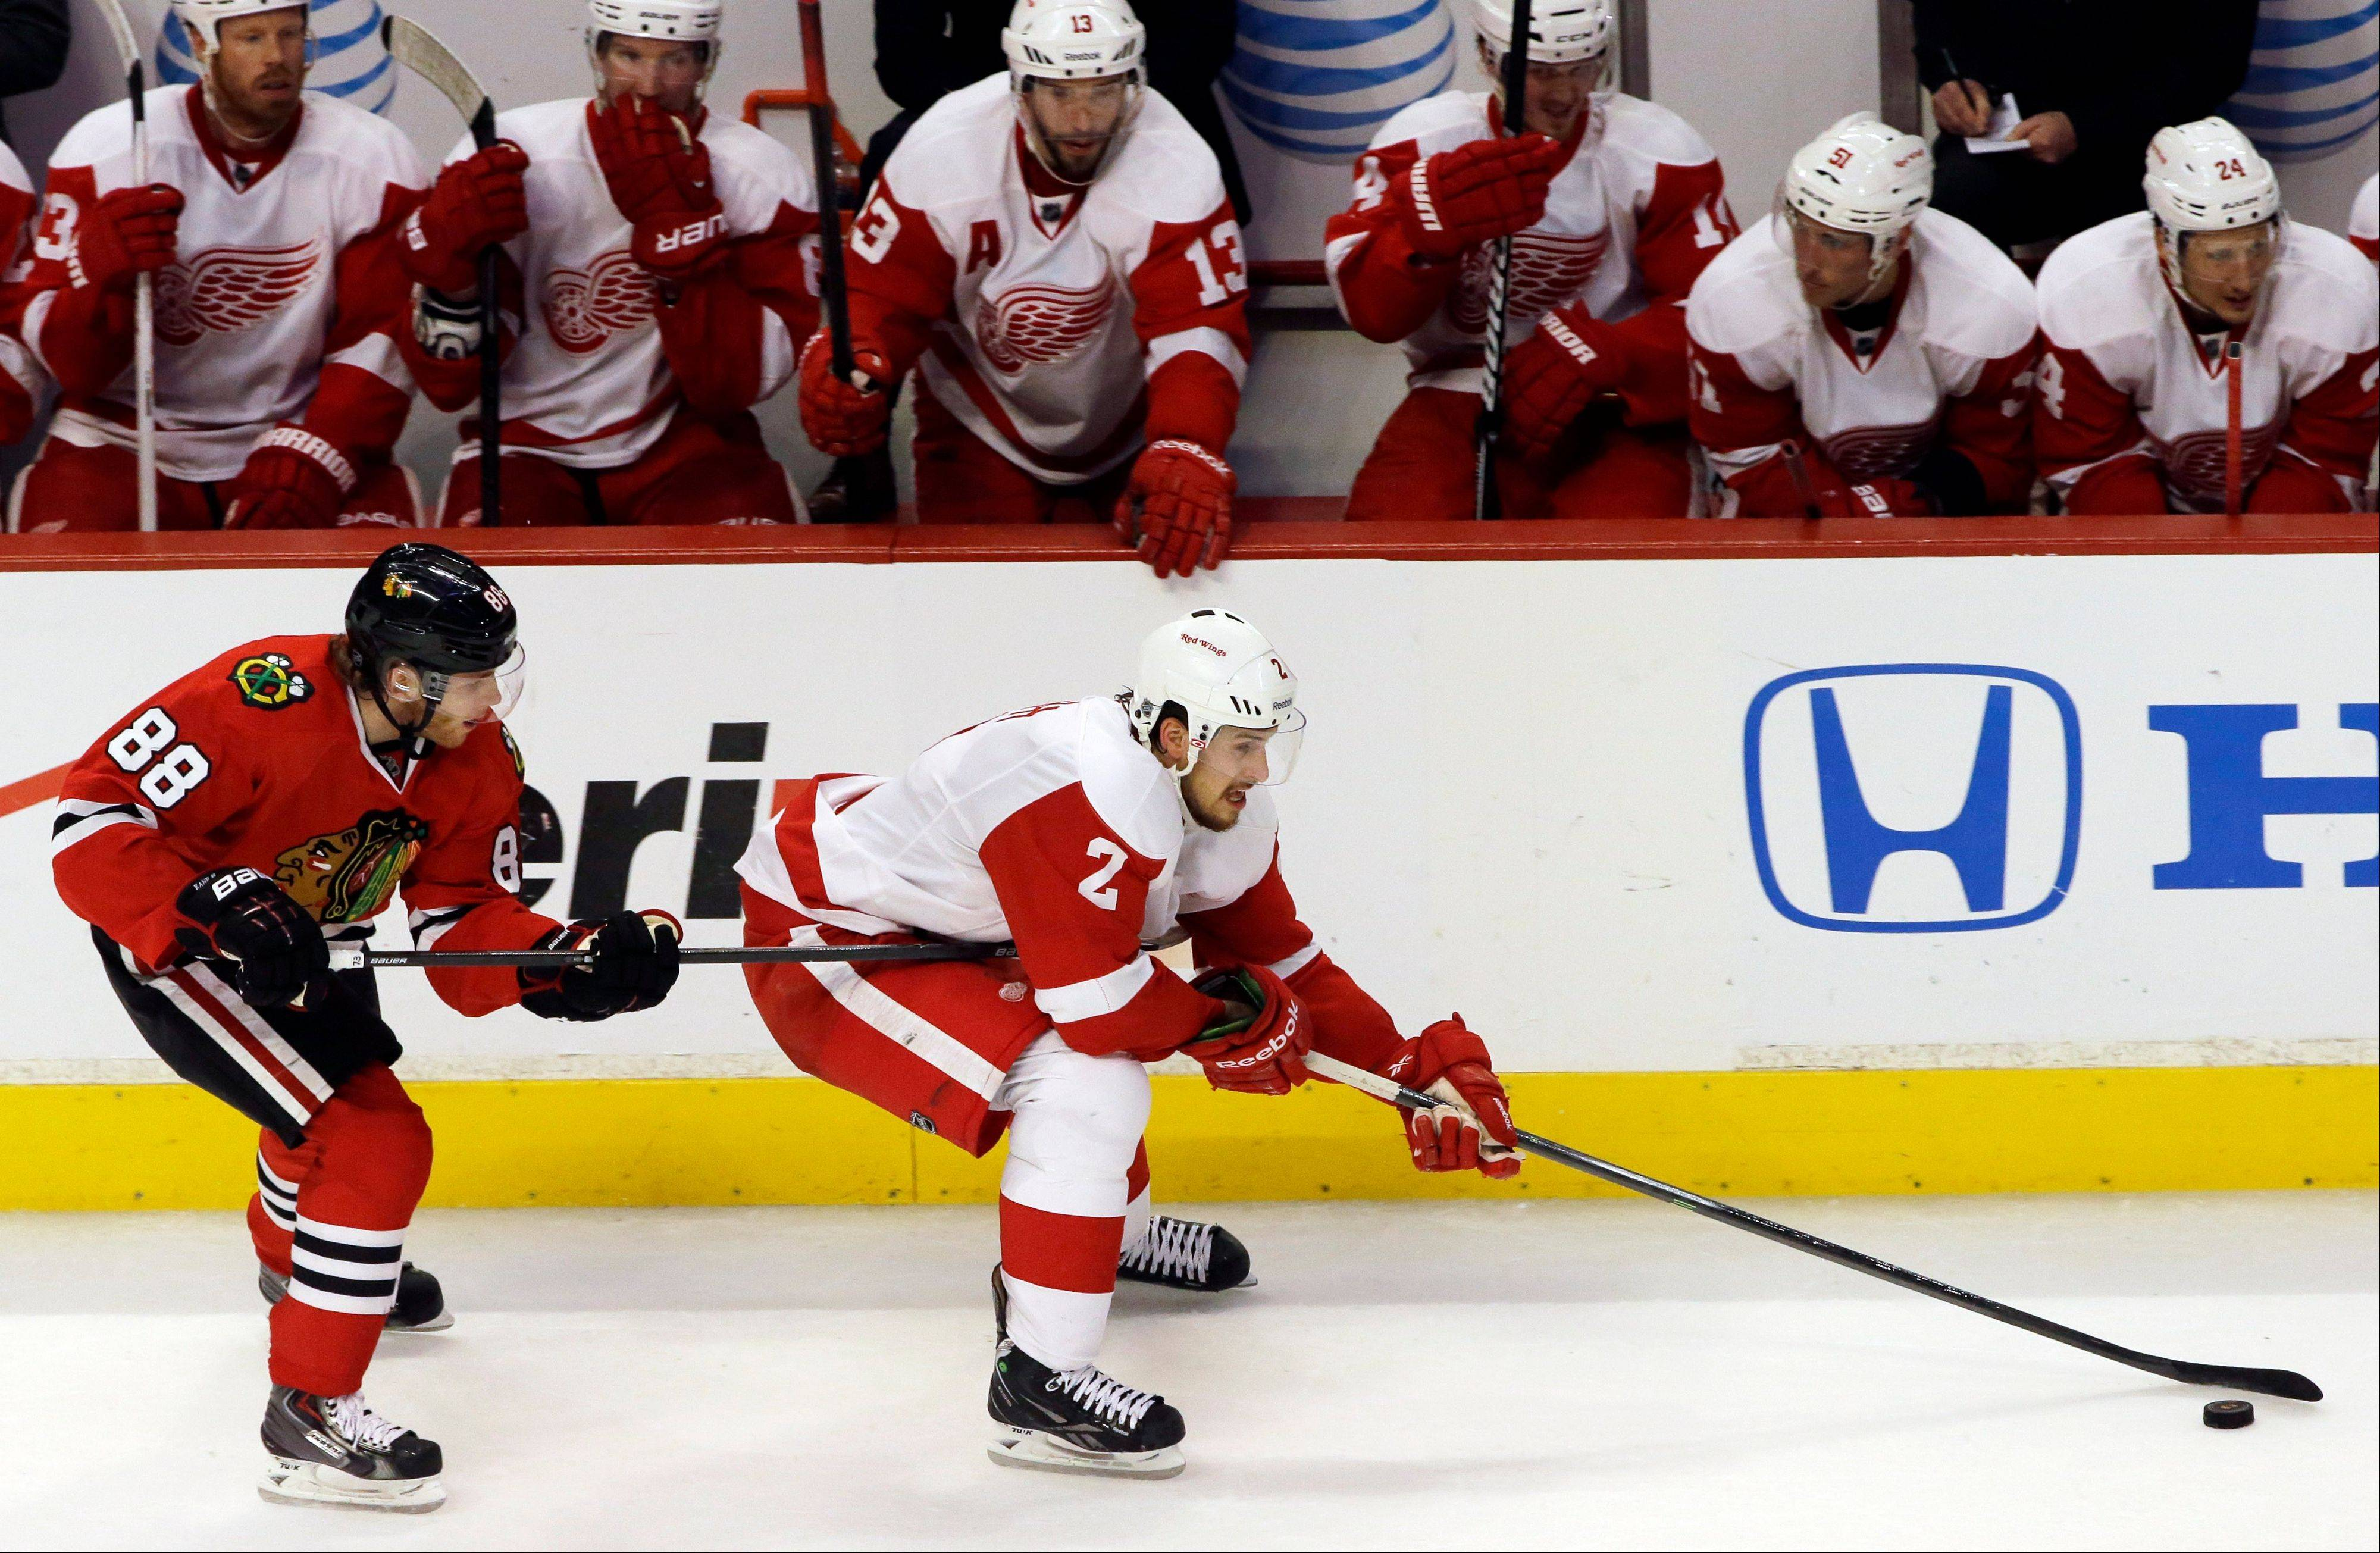 Smith, Red Wings get some redemption